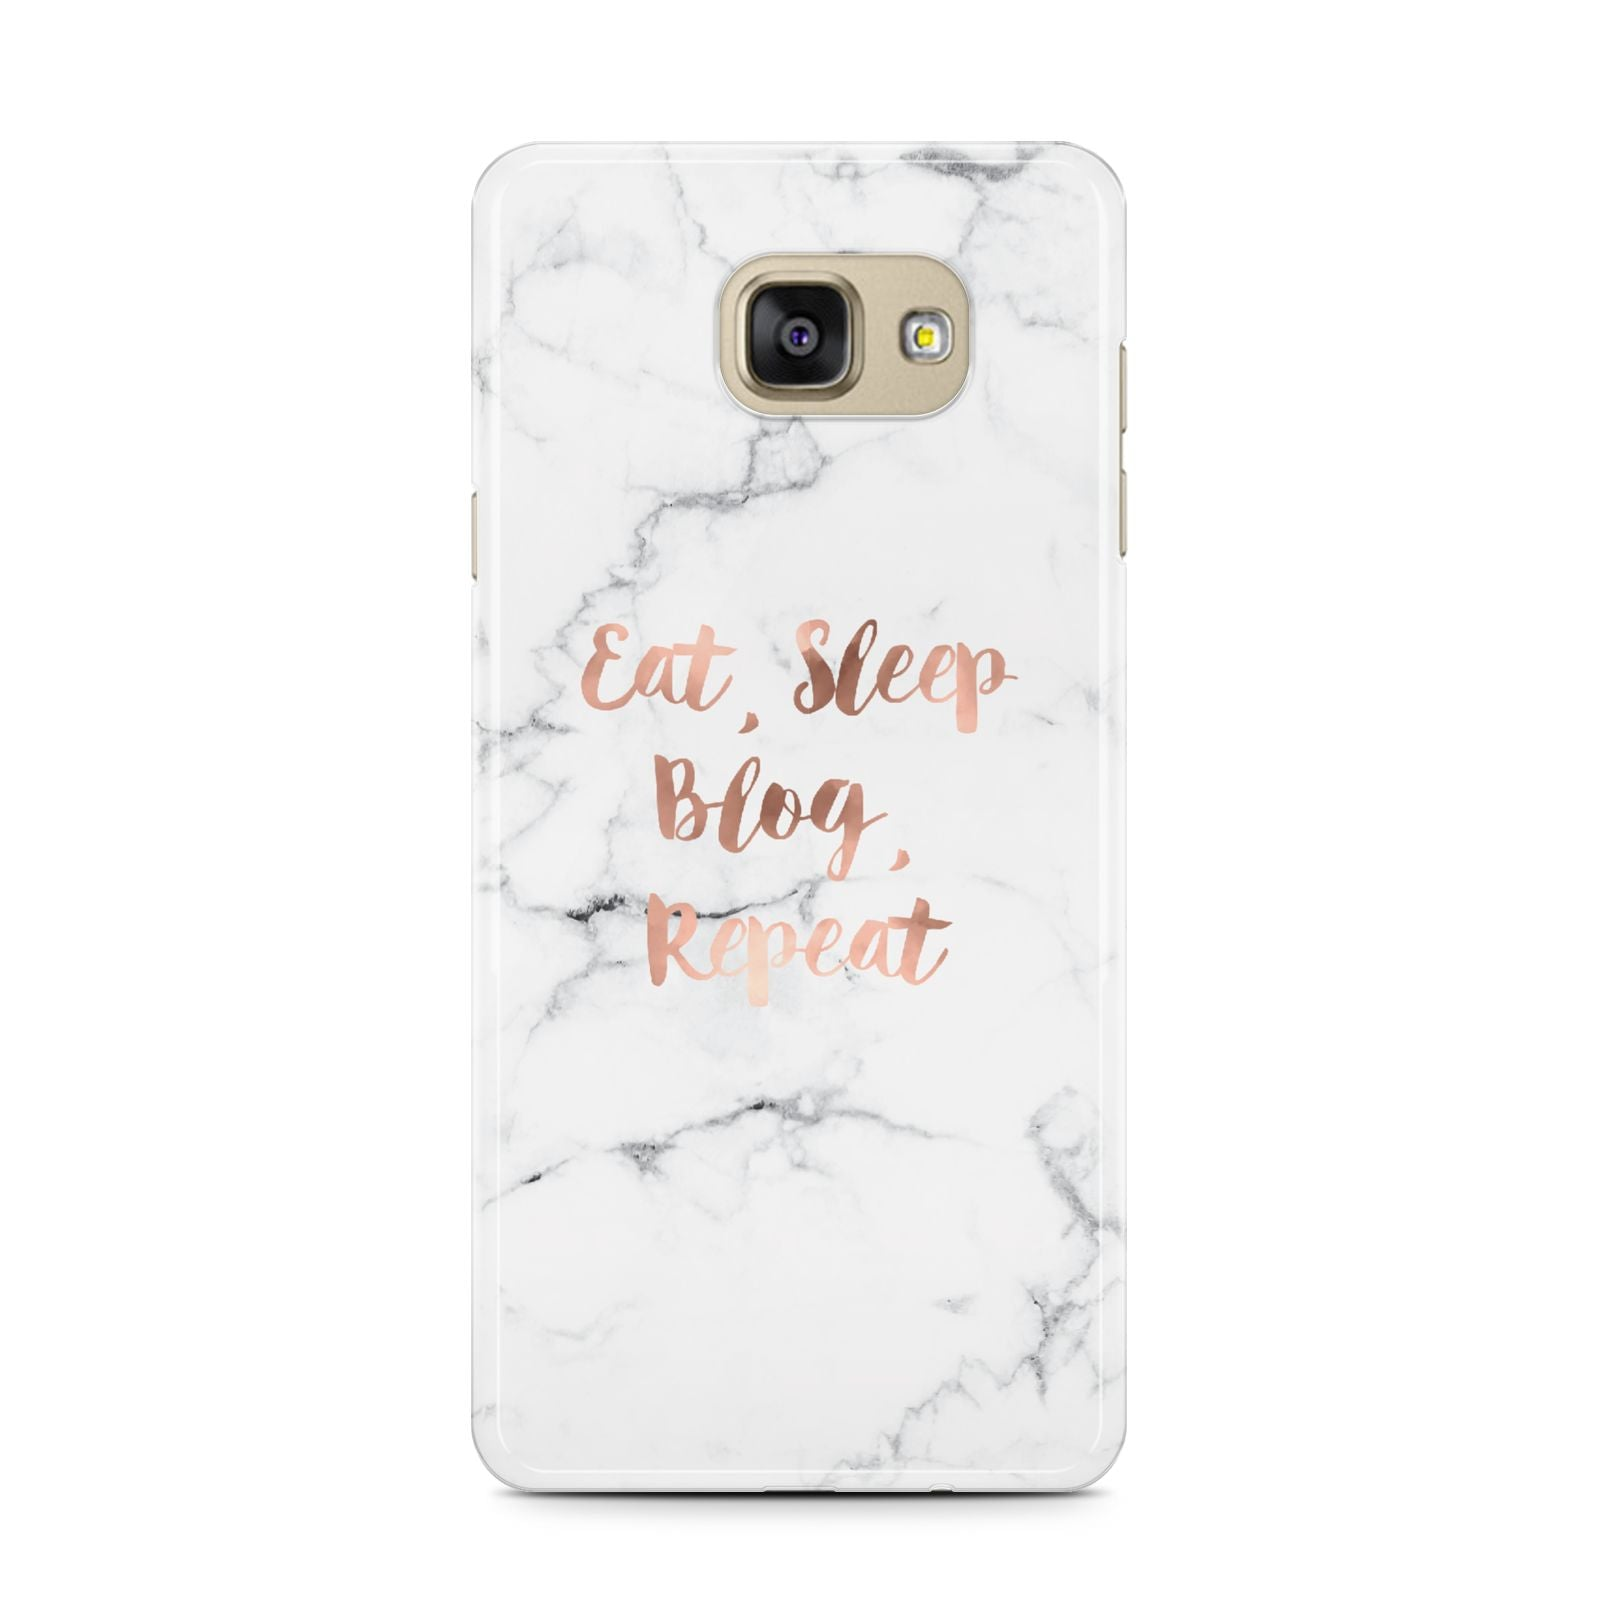 Eat Sleep Blog Repeat Marble Effect Samsung Galaxy A7 2016 Case on gold phone